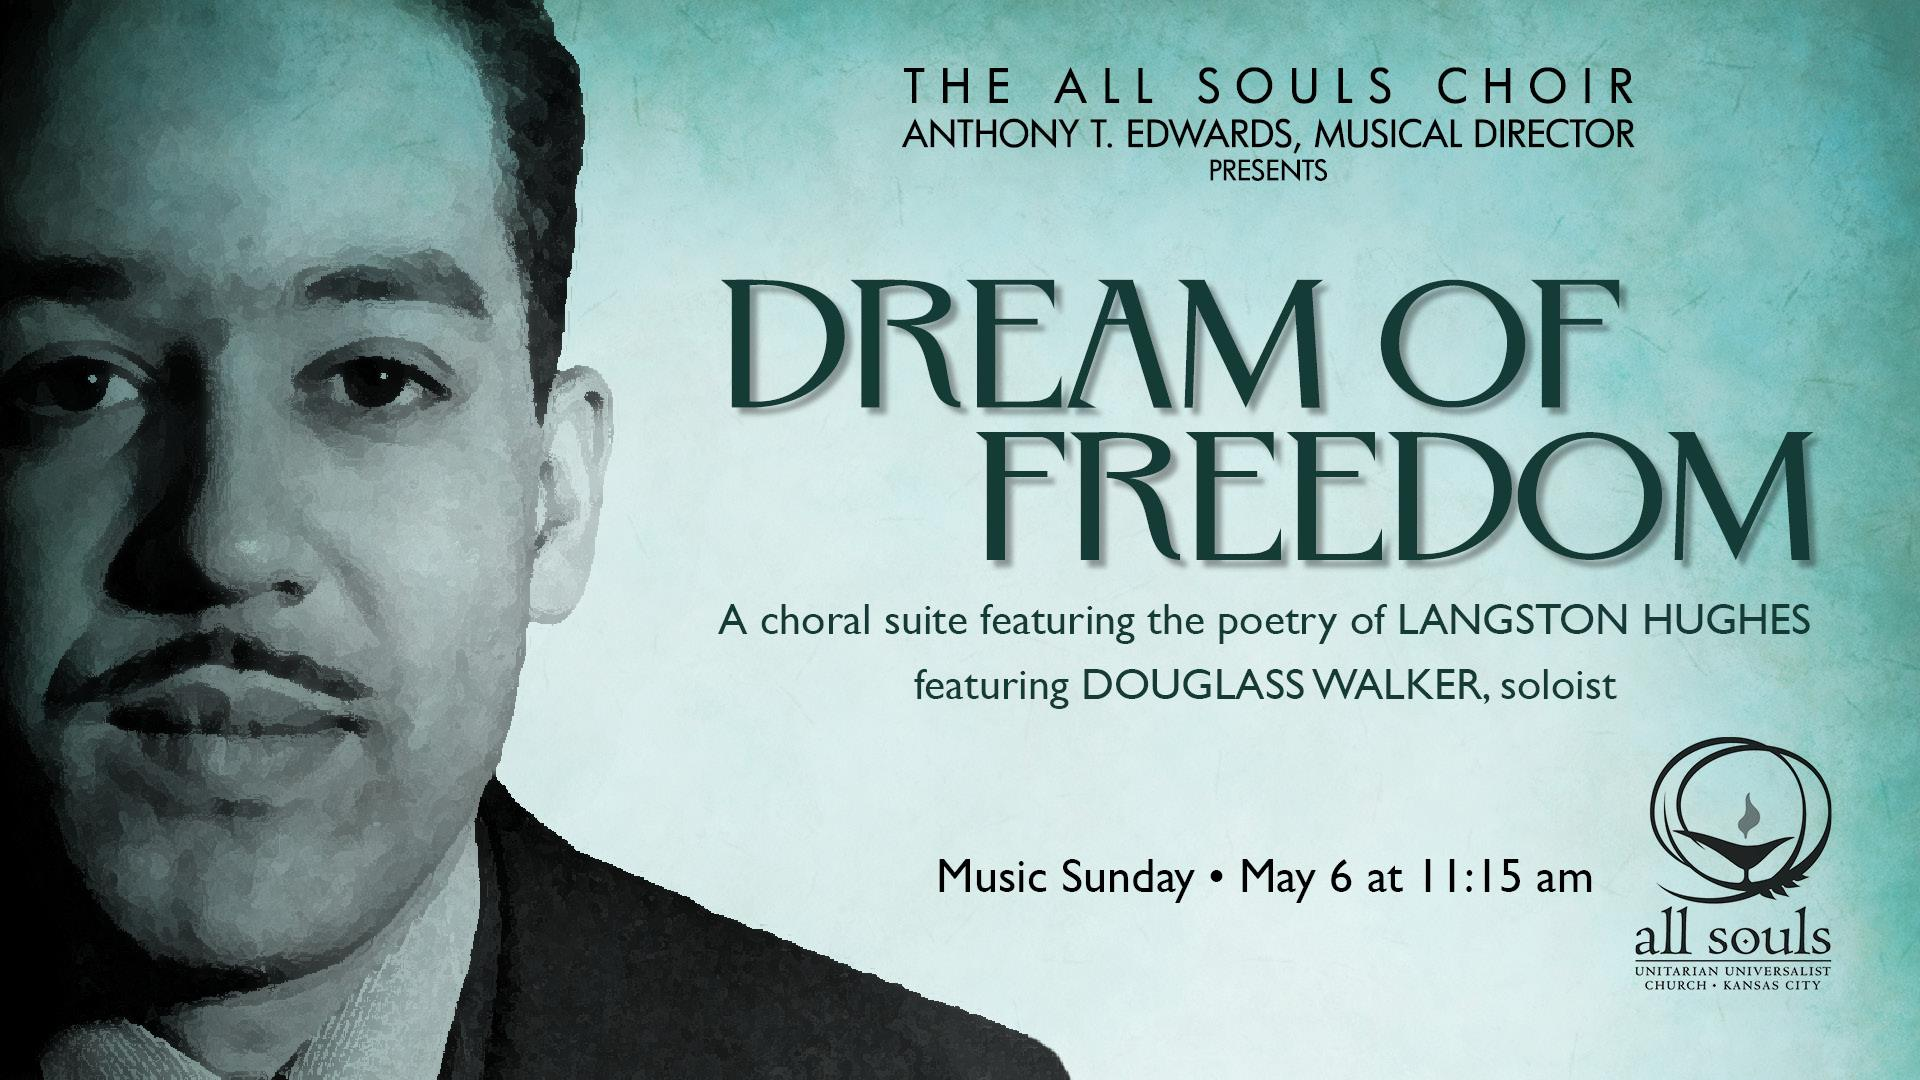 MUSIC SUNDAY - 11:15 am - The All Souls Choir and Music Director Anthony Edwards will present Dream of Freedom, a choral suite by Evan Mack featuring the poetry of Langston Hughes (1902-1967). Langston Hughes, born in Joplin, MO, was an American poet, novelist, and playwright whose African-American themes made him a primary contributor to the Harlem Renaissance of the 1920s. He continuously fought for social justice and racial equality through his literature.